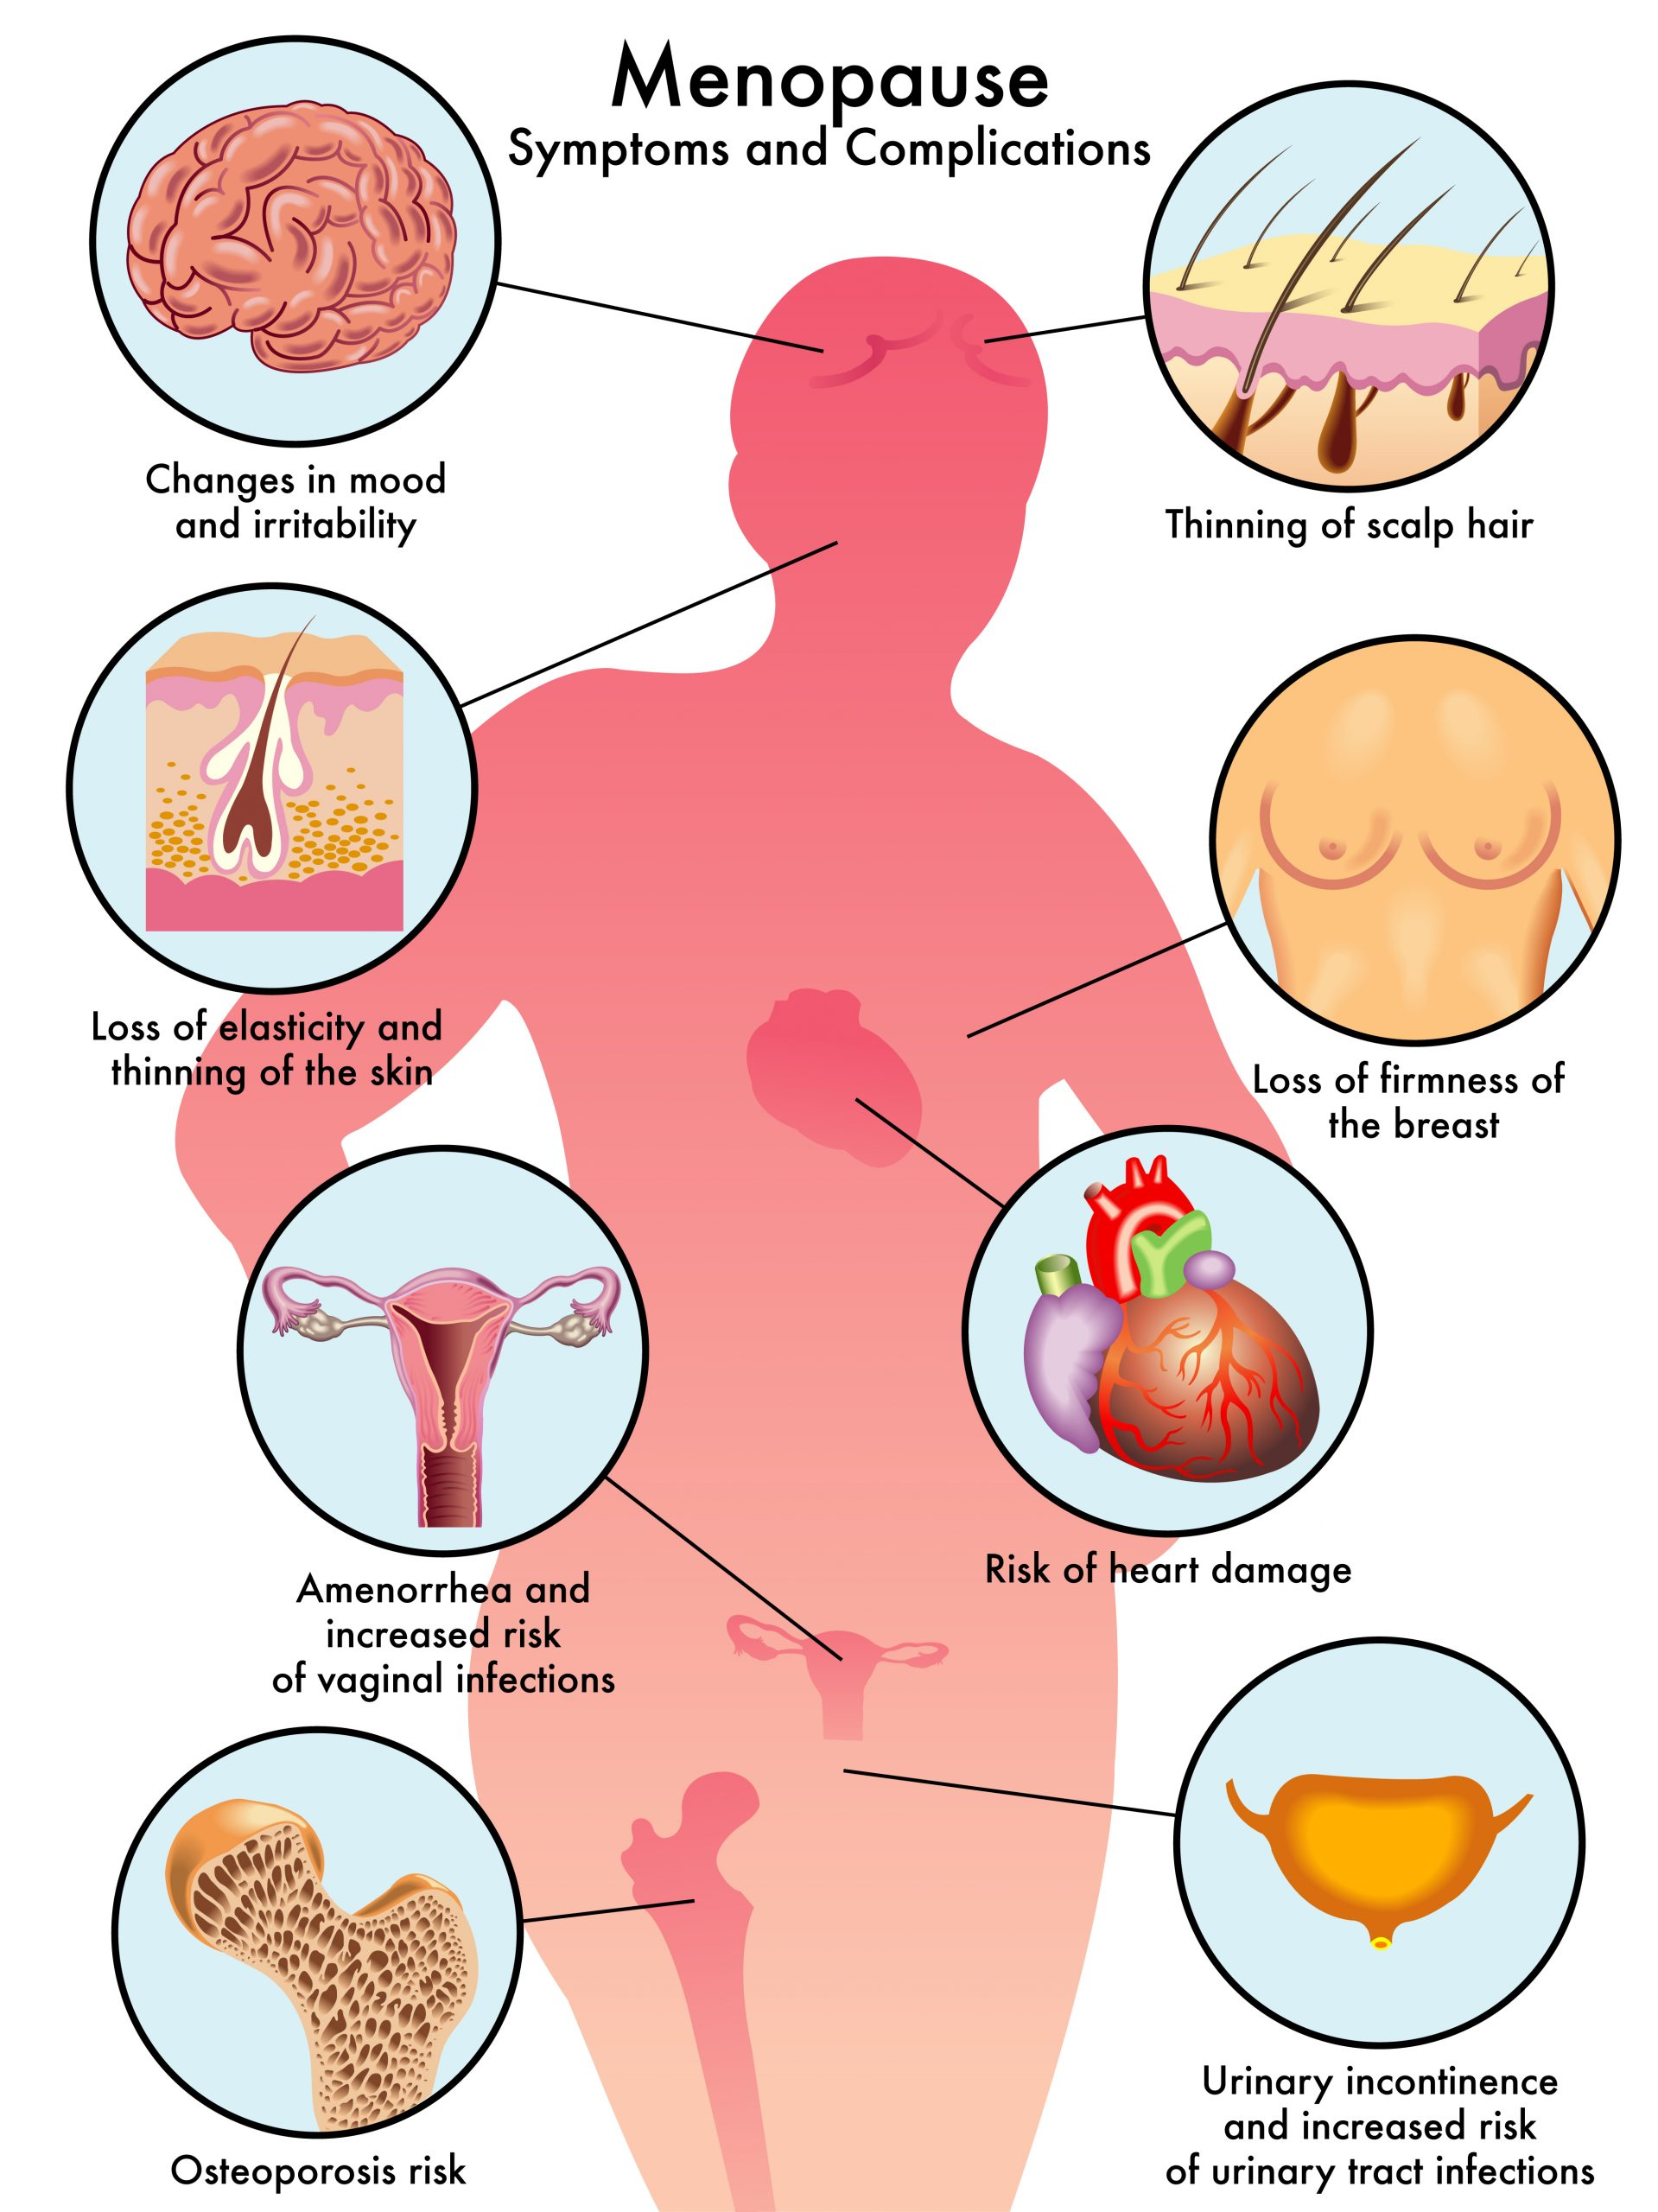 menopause symptoms and complications infographic